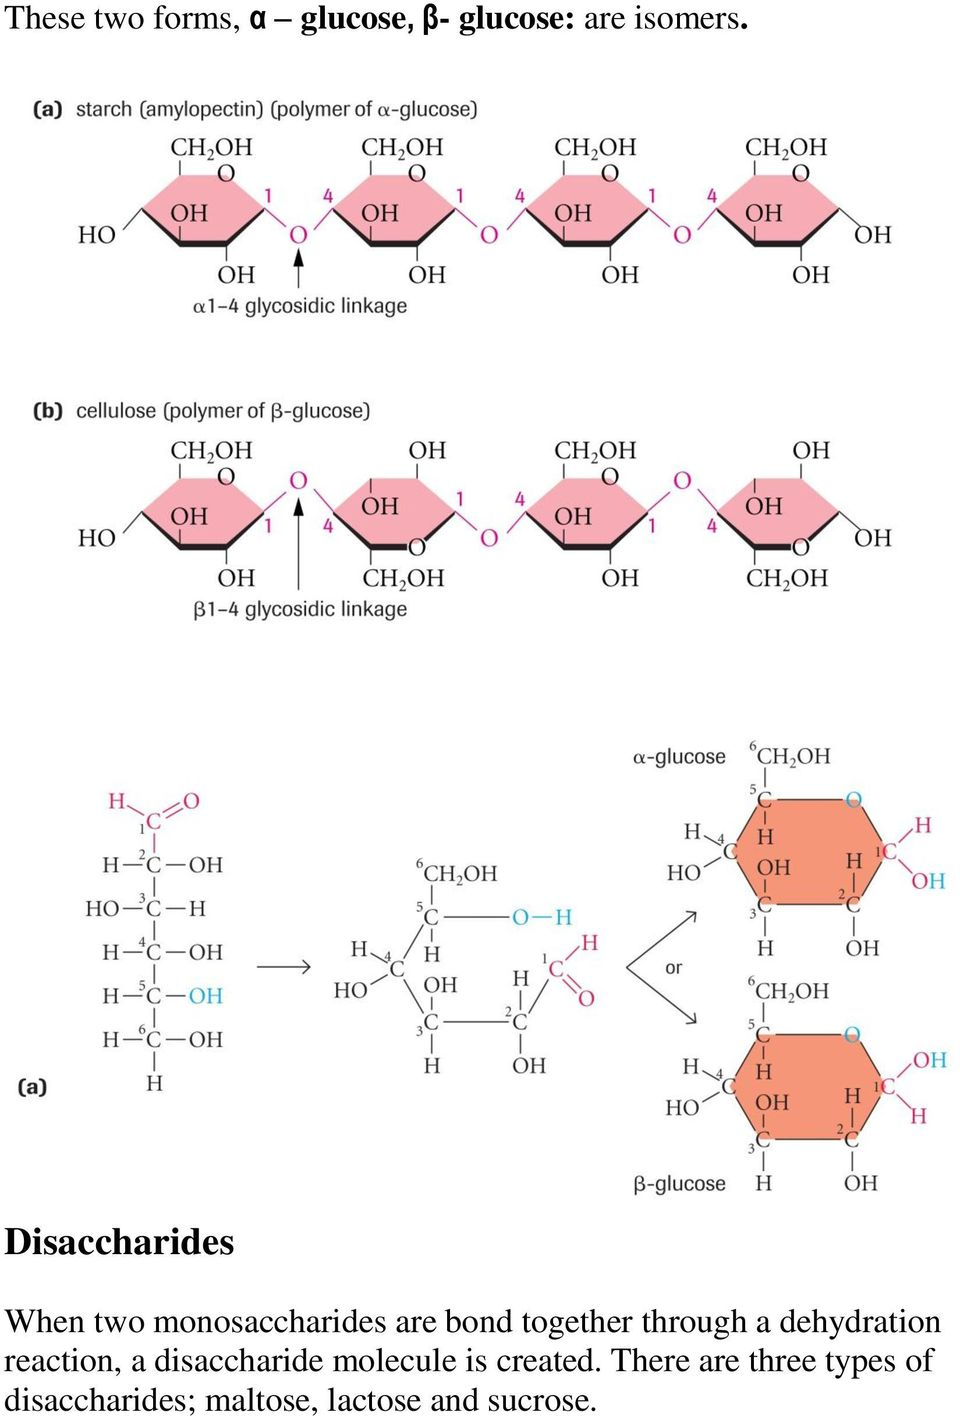 through a dehydration reaction, a disaccharide molecule is